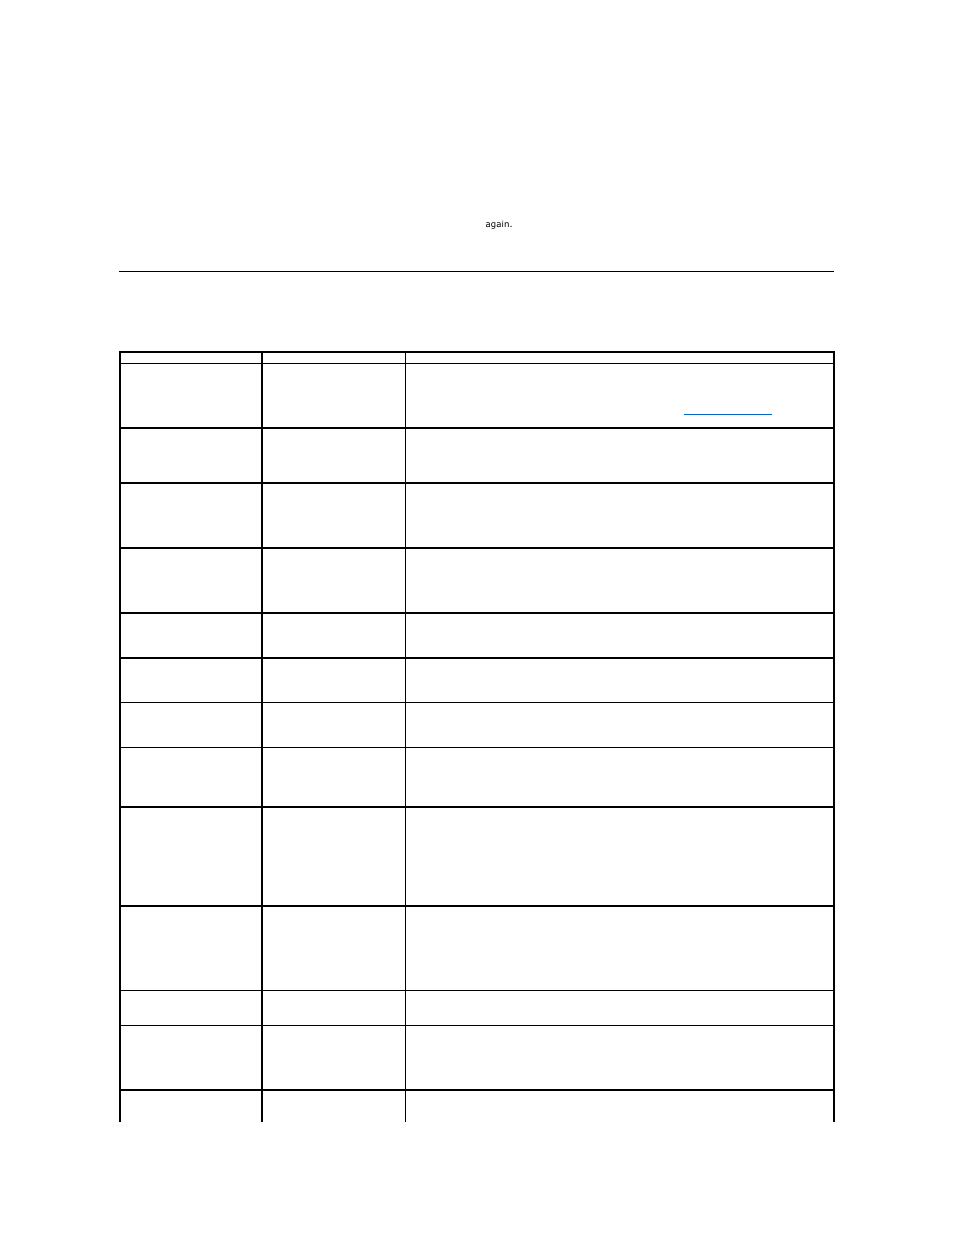 Common problems | Dell P2210 Monitor User Manual | Page 30 / 32